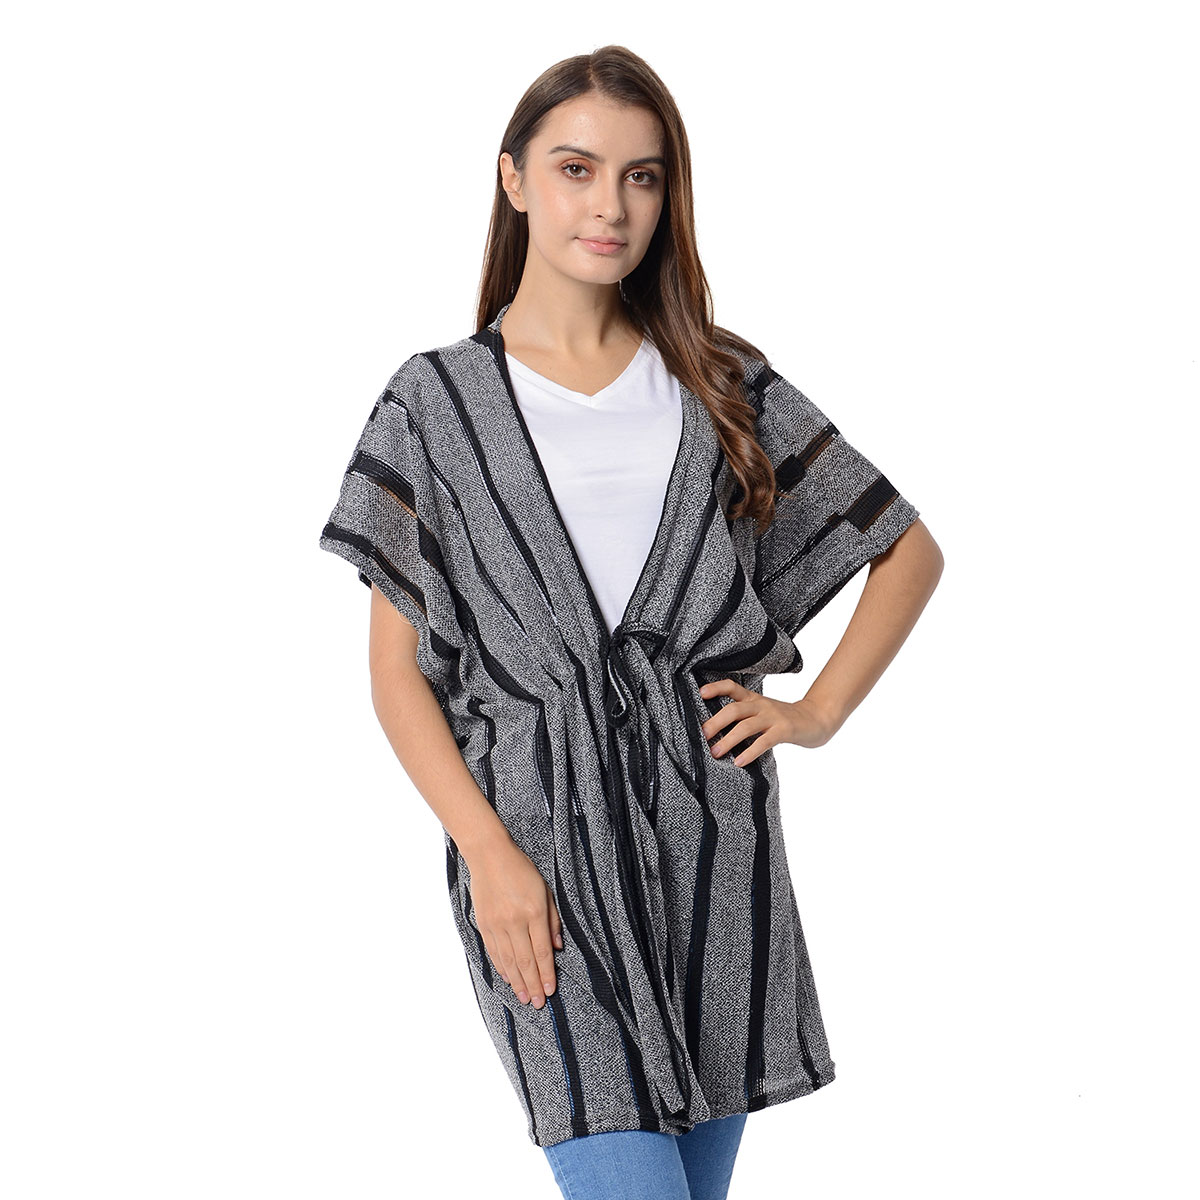 7e7f4701e4f0b Gray and Black Striped Kimono (31.5x31.5 in, 100% Polyester) | Shop LC